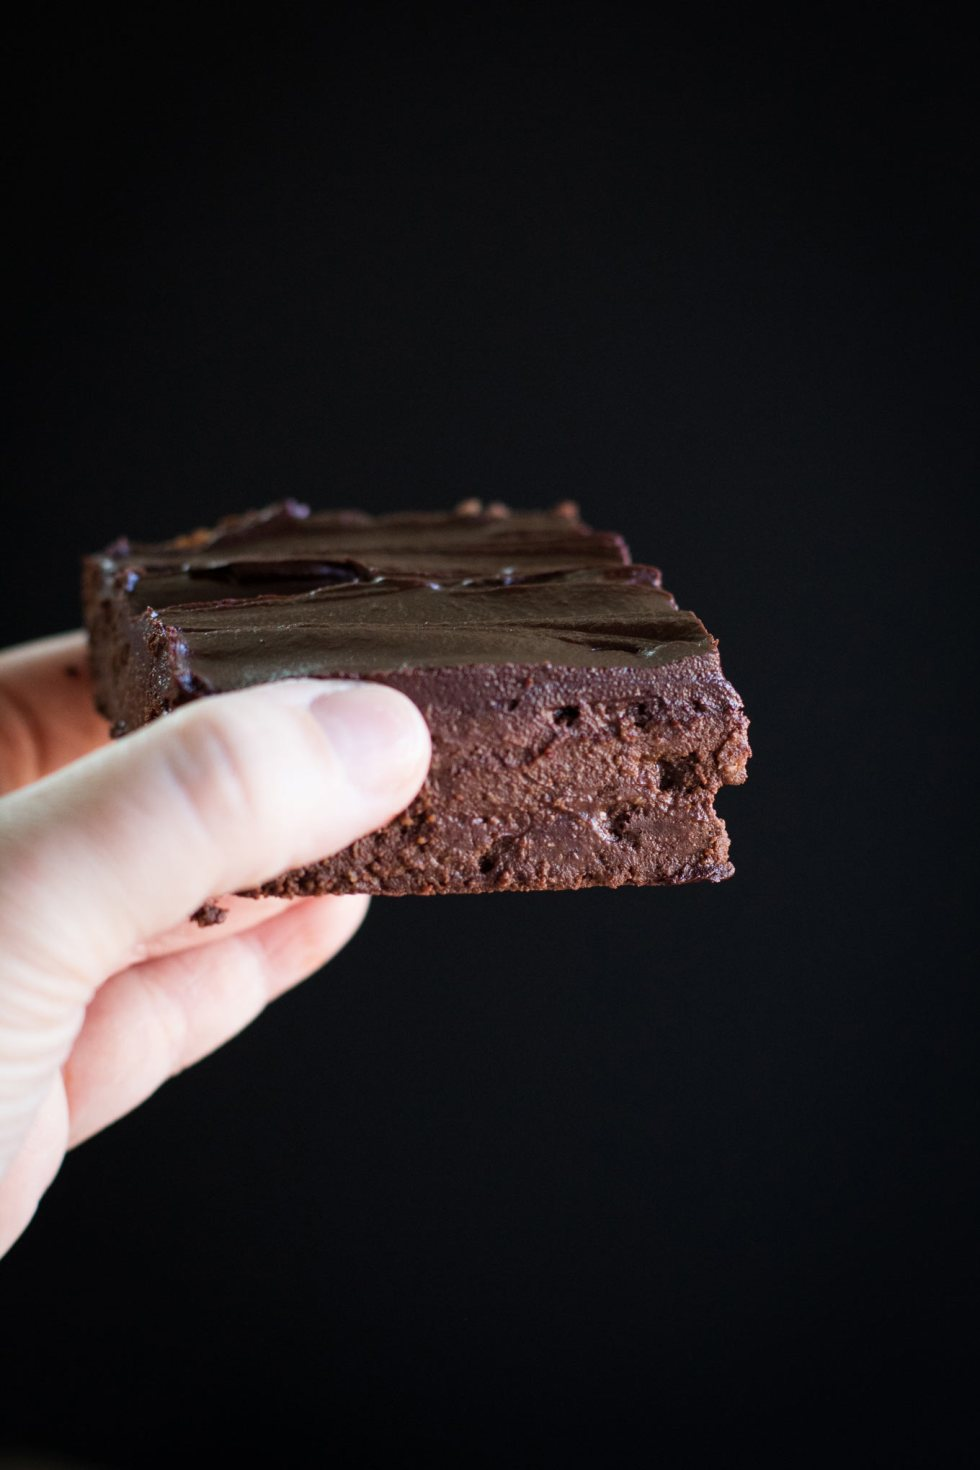 A hand holding up a dark chocolate cheesecake brownie covered in chocolate ganache